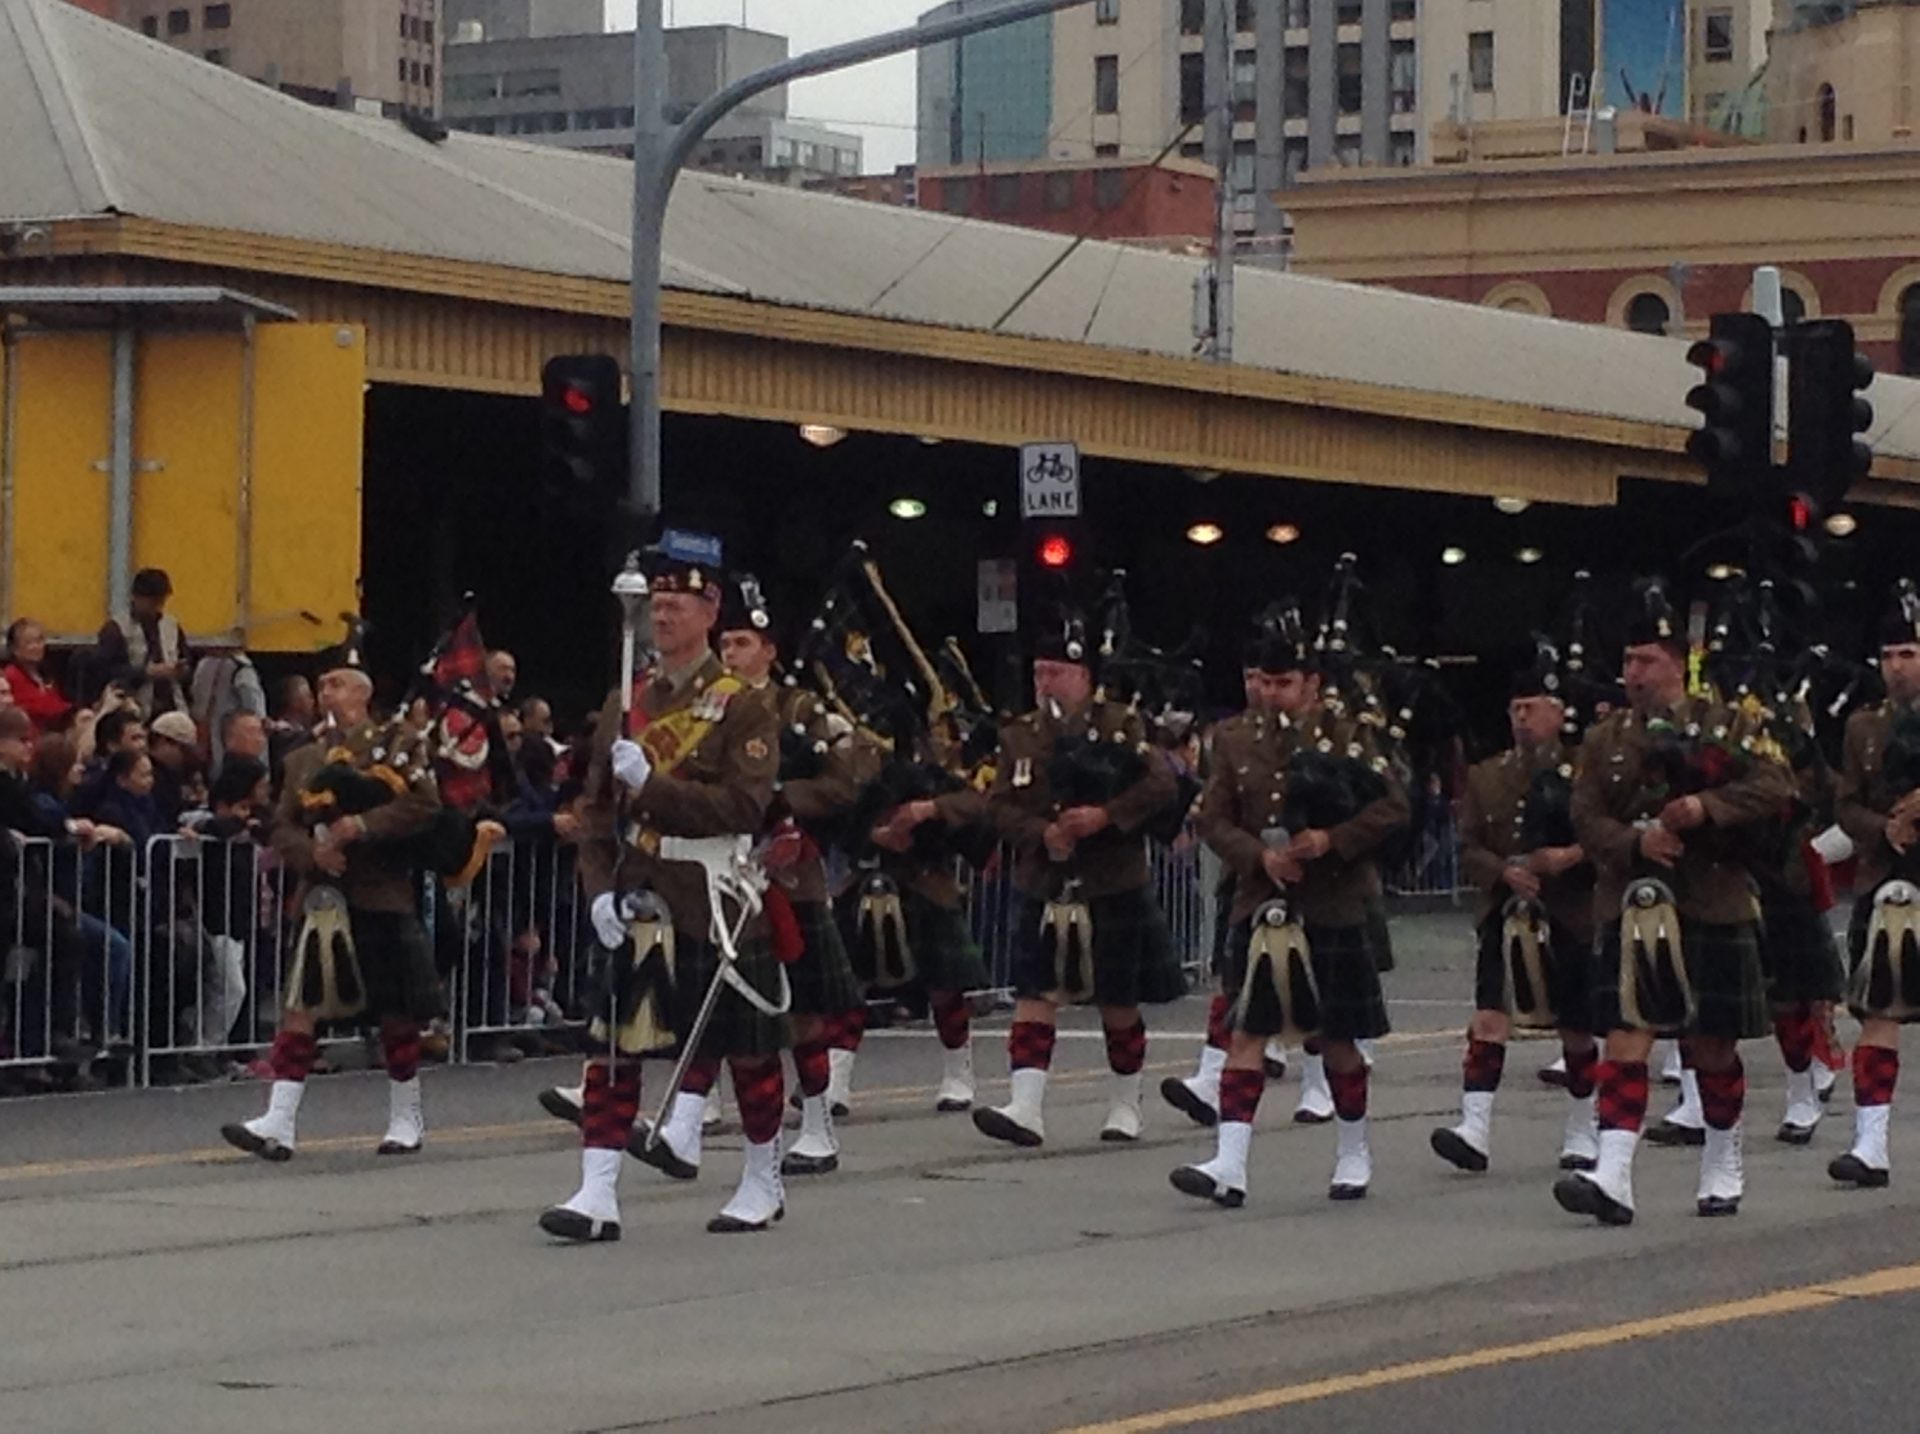 Photo by Trisha Haddock. Anzac Day Parade with 5/6 RVR Pipes and Drums.